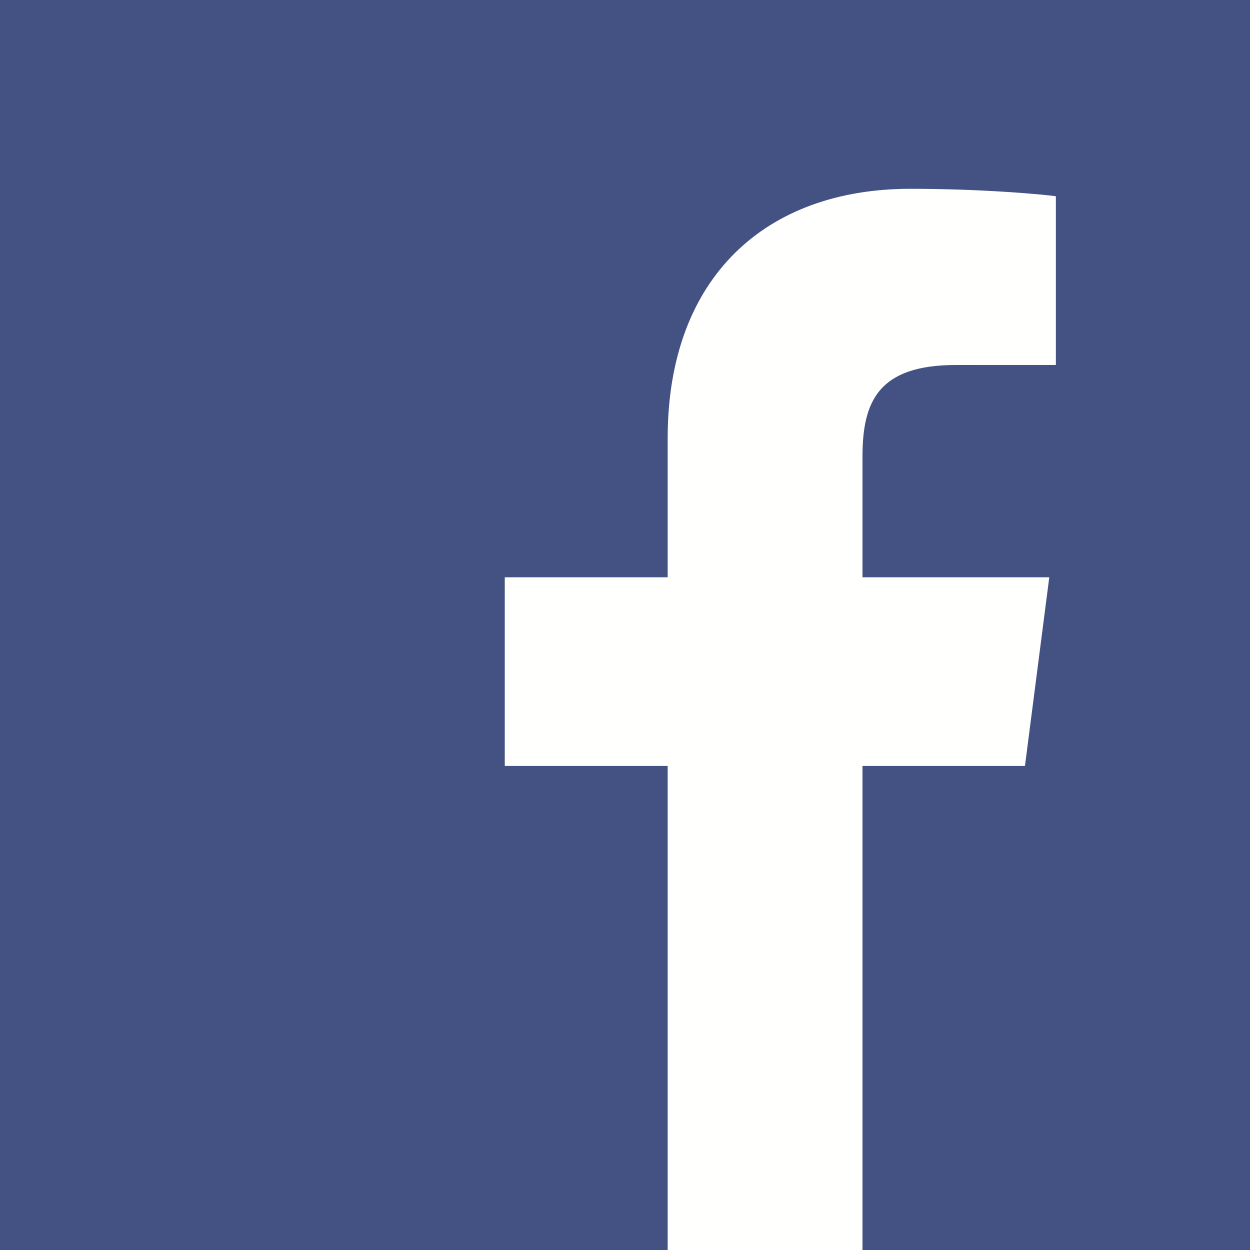 Facebook Logo Icon White